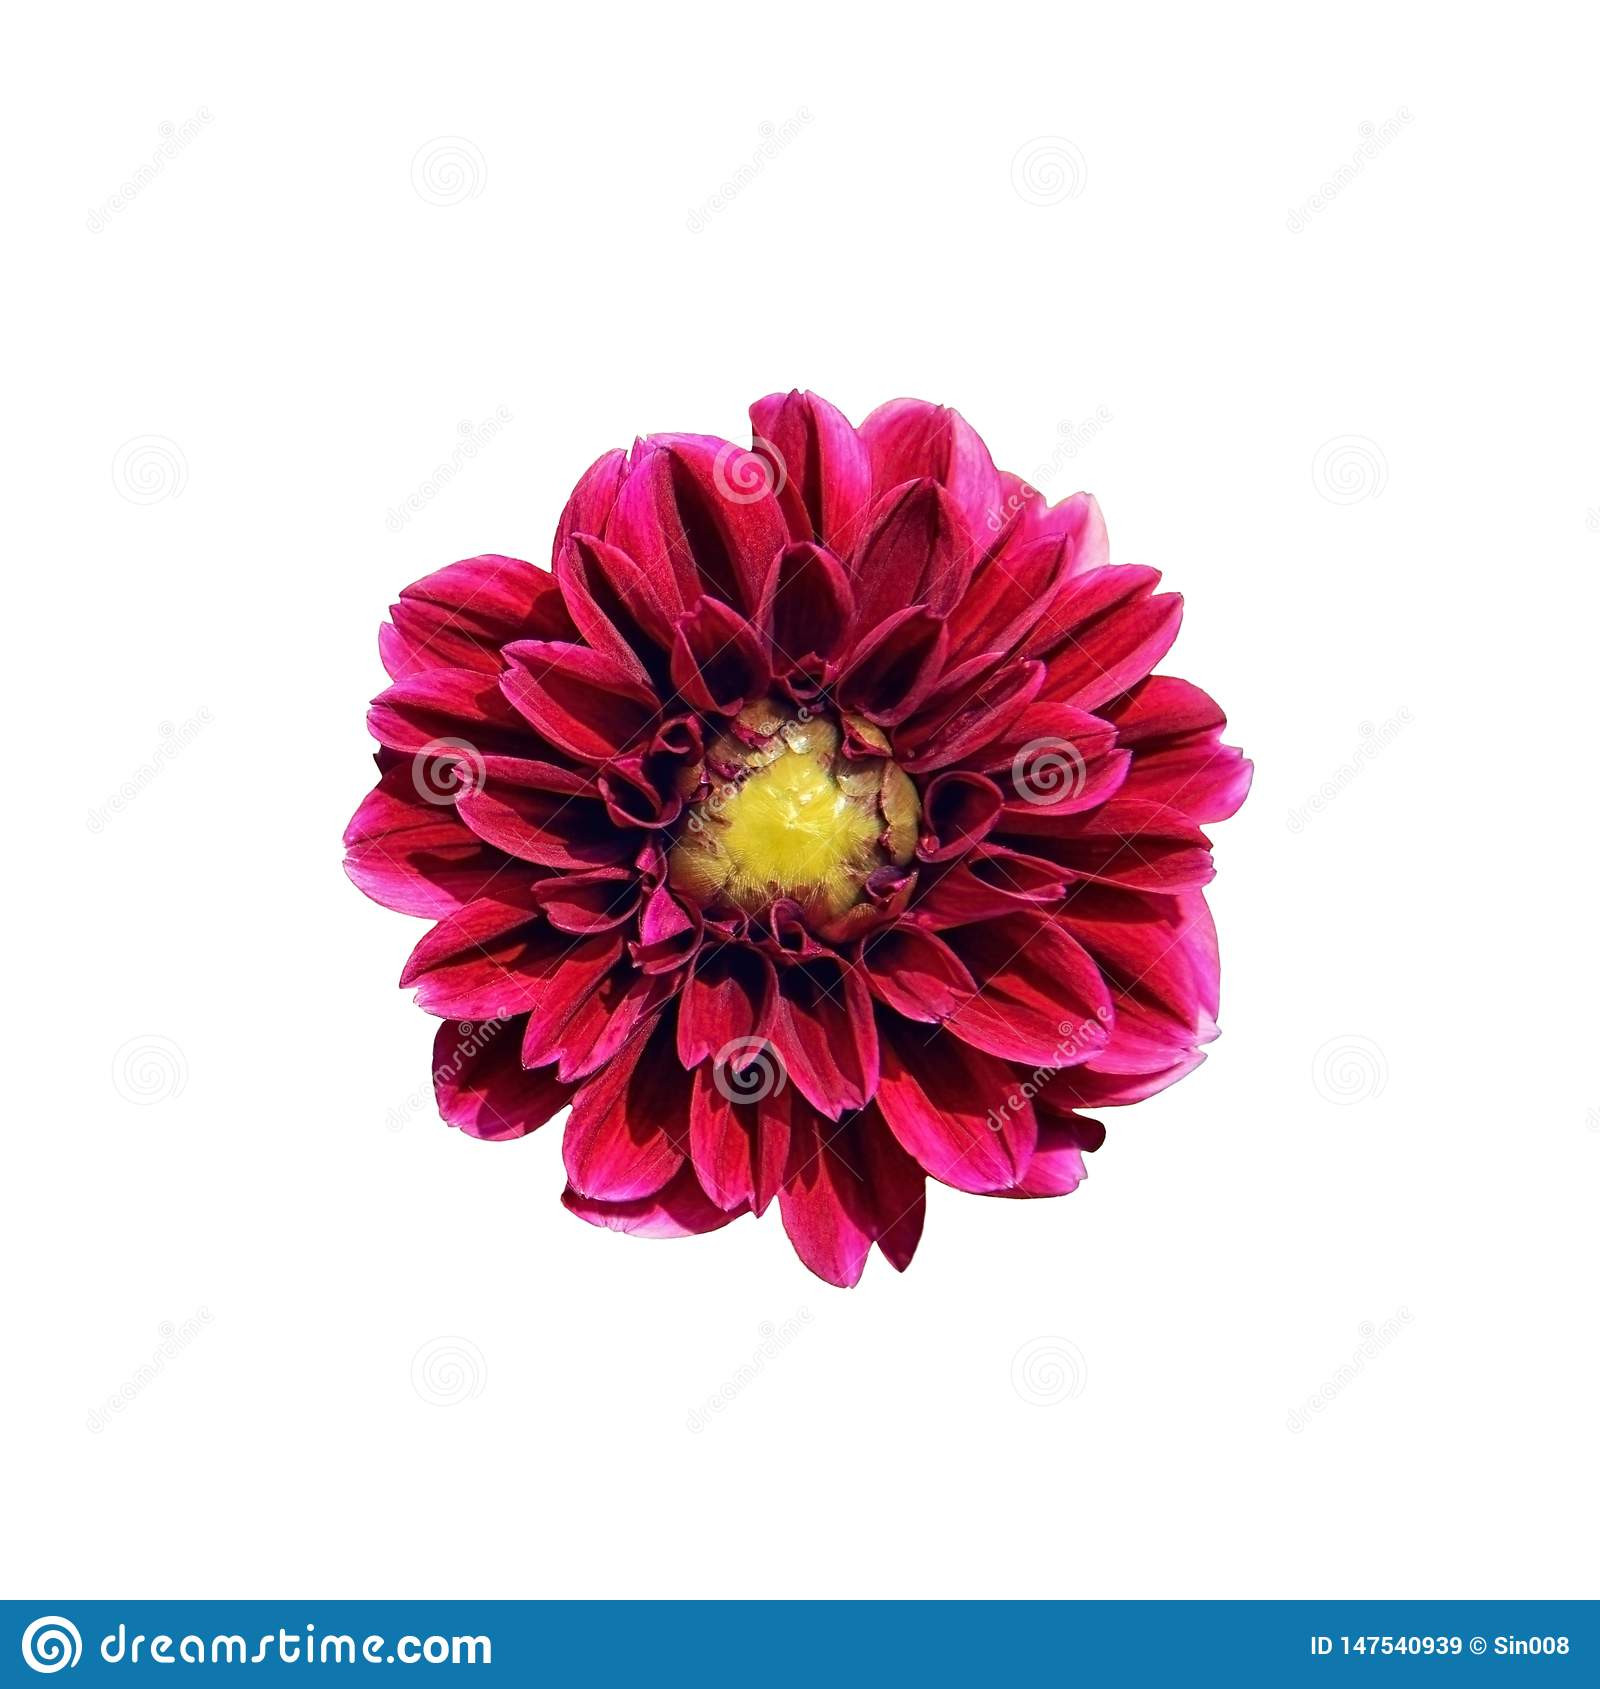 Single bright pink Dahlia flower isolated on white background. Close-up, top view. A beautiful purple flower with a yellow middle